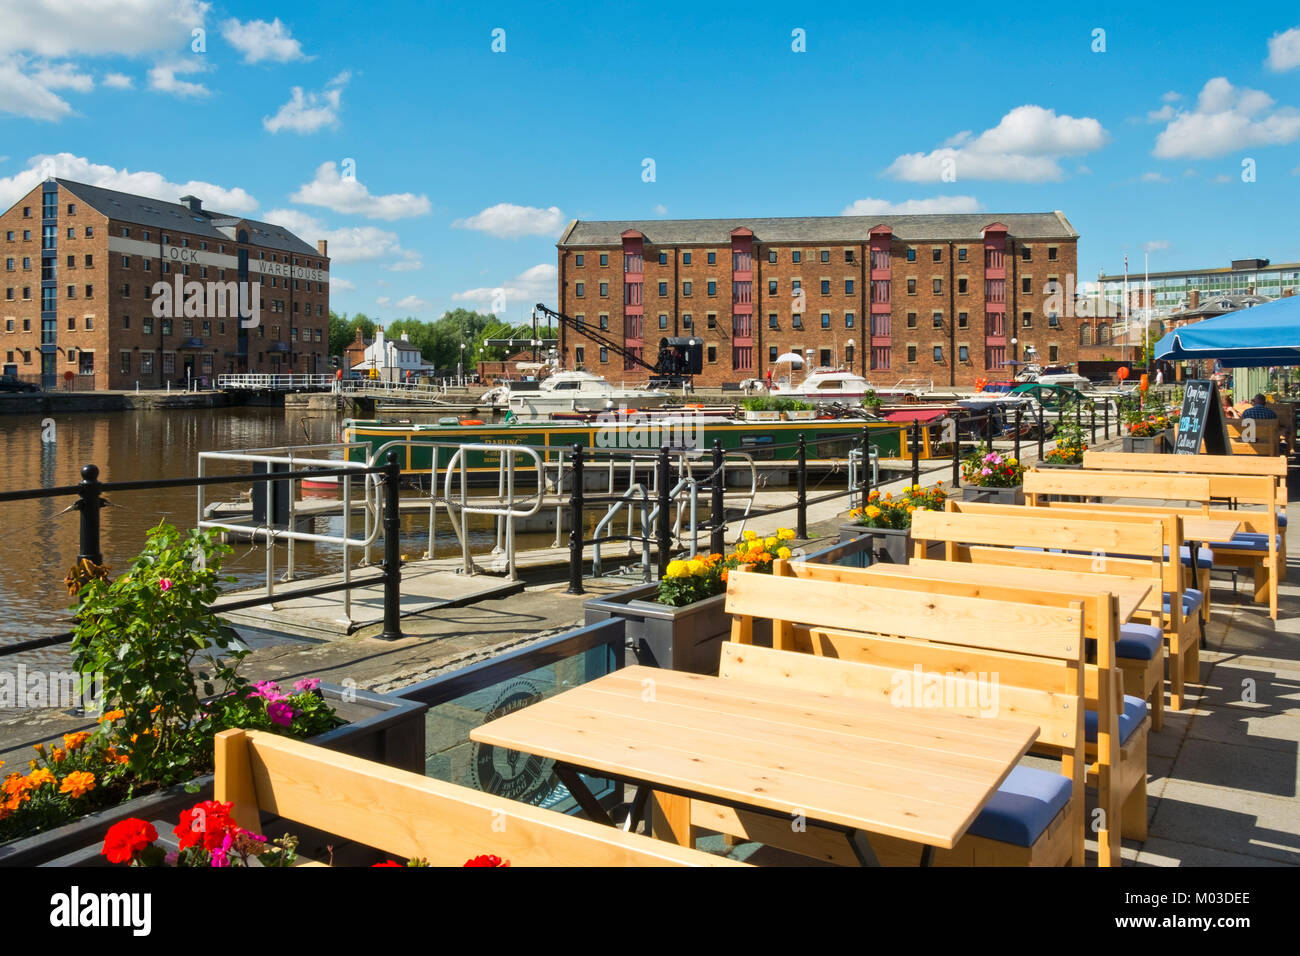 Gloucester, UK - 18th July 2016: Waterside cafes and restaurants wait ready for customers, Gloucester Docks, Gloucester, - Stock Image